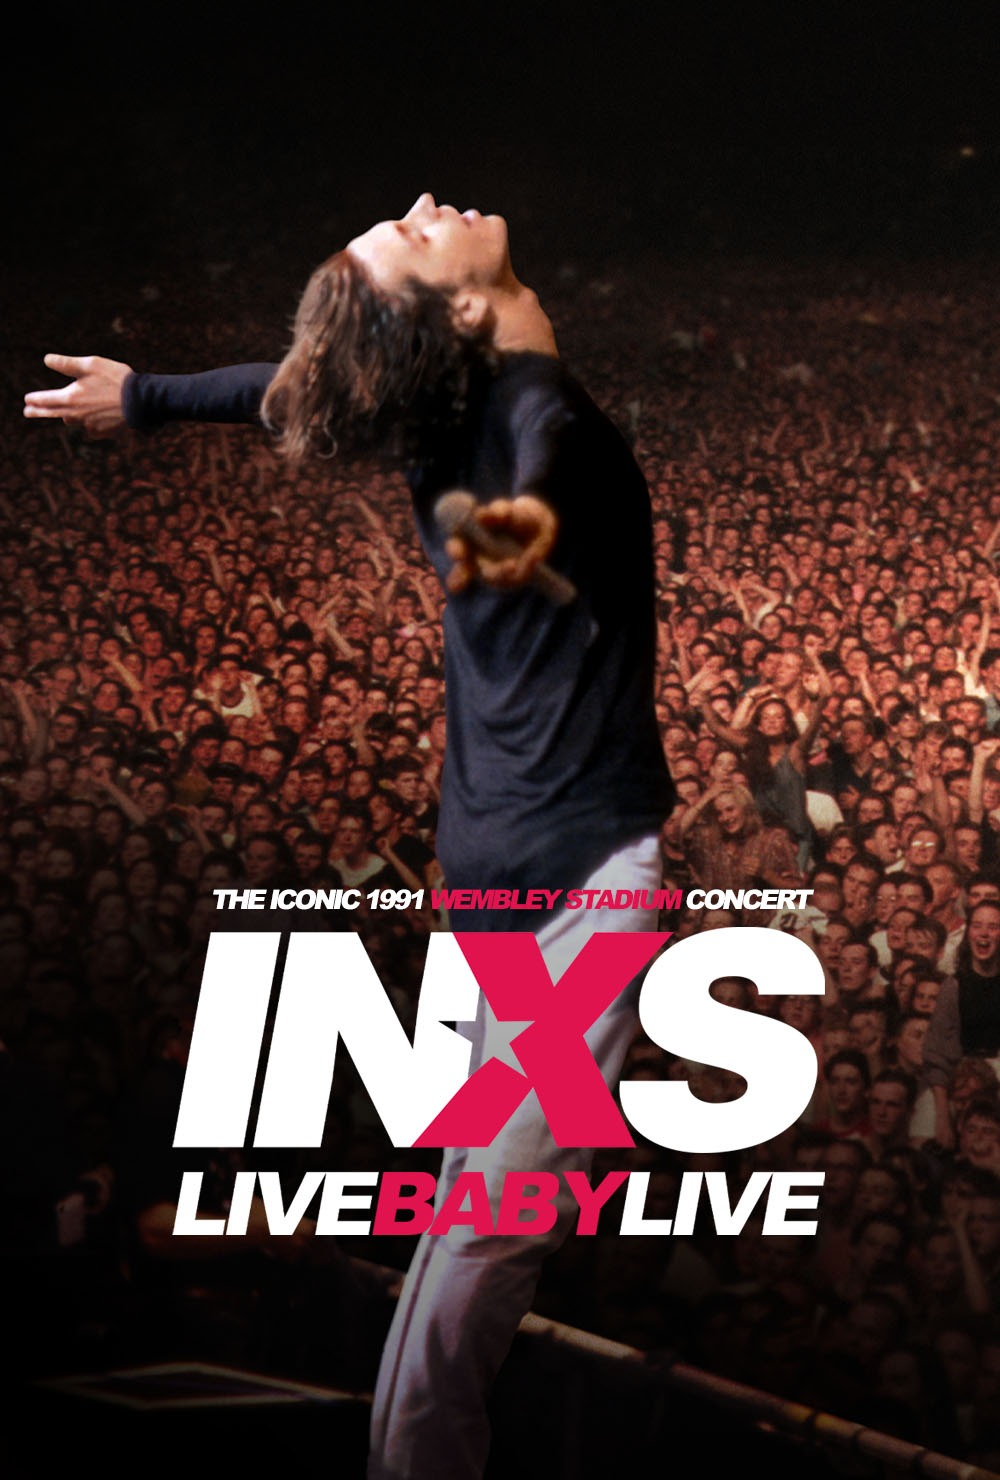 Photo of Pre venta en cines de 'Inxs: Live Baby Live At Wembley Stadium'